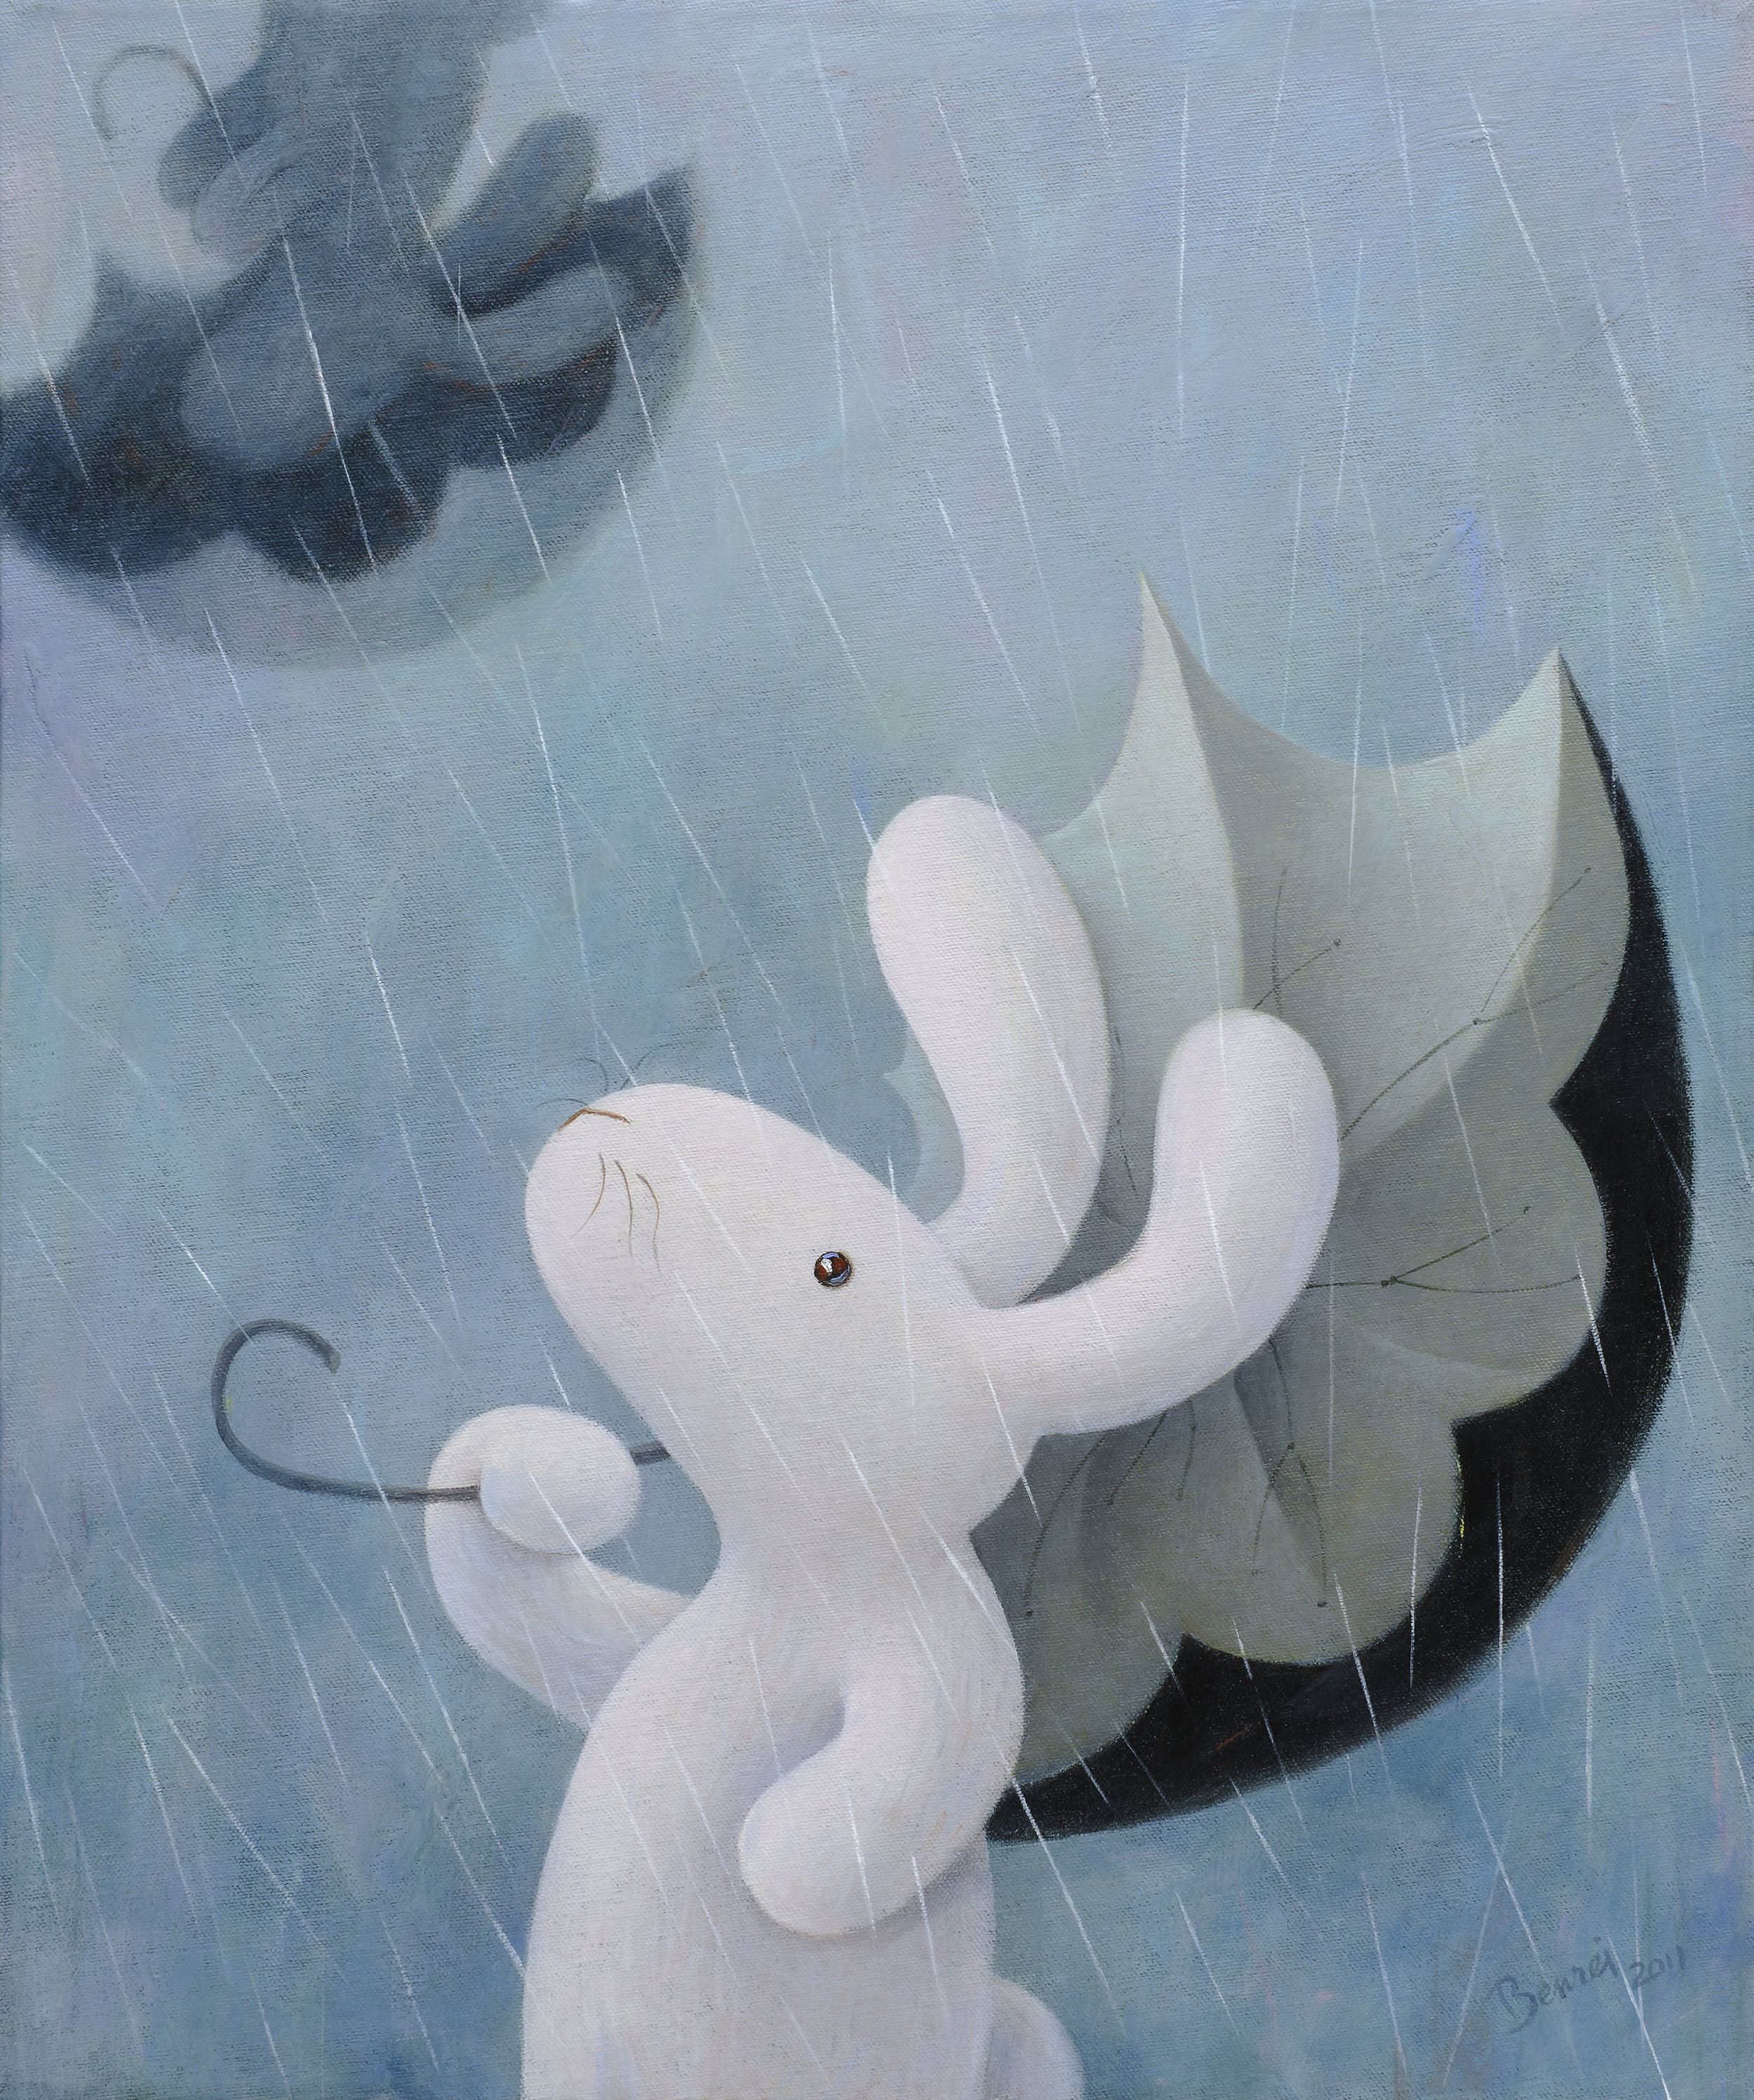 Oh, the wind, the wind is blowing, through the rain the wind is blowing, and I see my shadow drifts away 啊!風兒吹!它穿過雨絲不停地吹,我看著我的影子遠去啦!